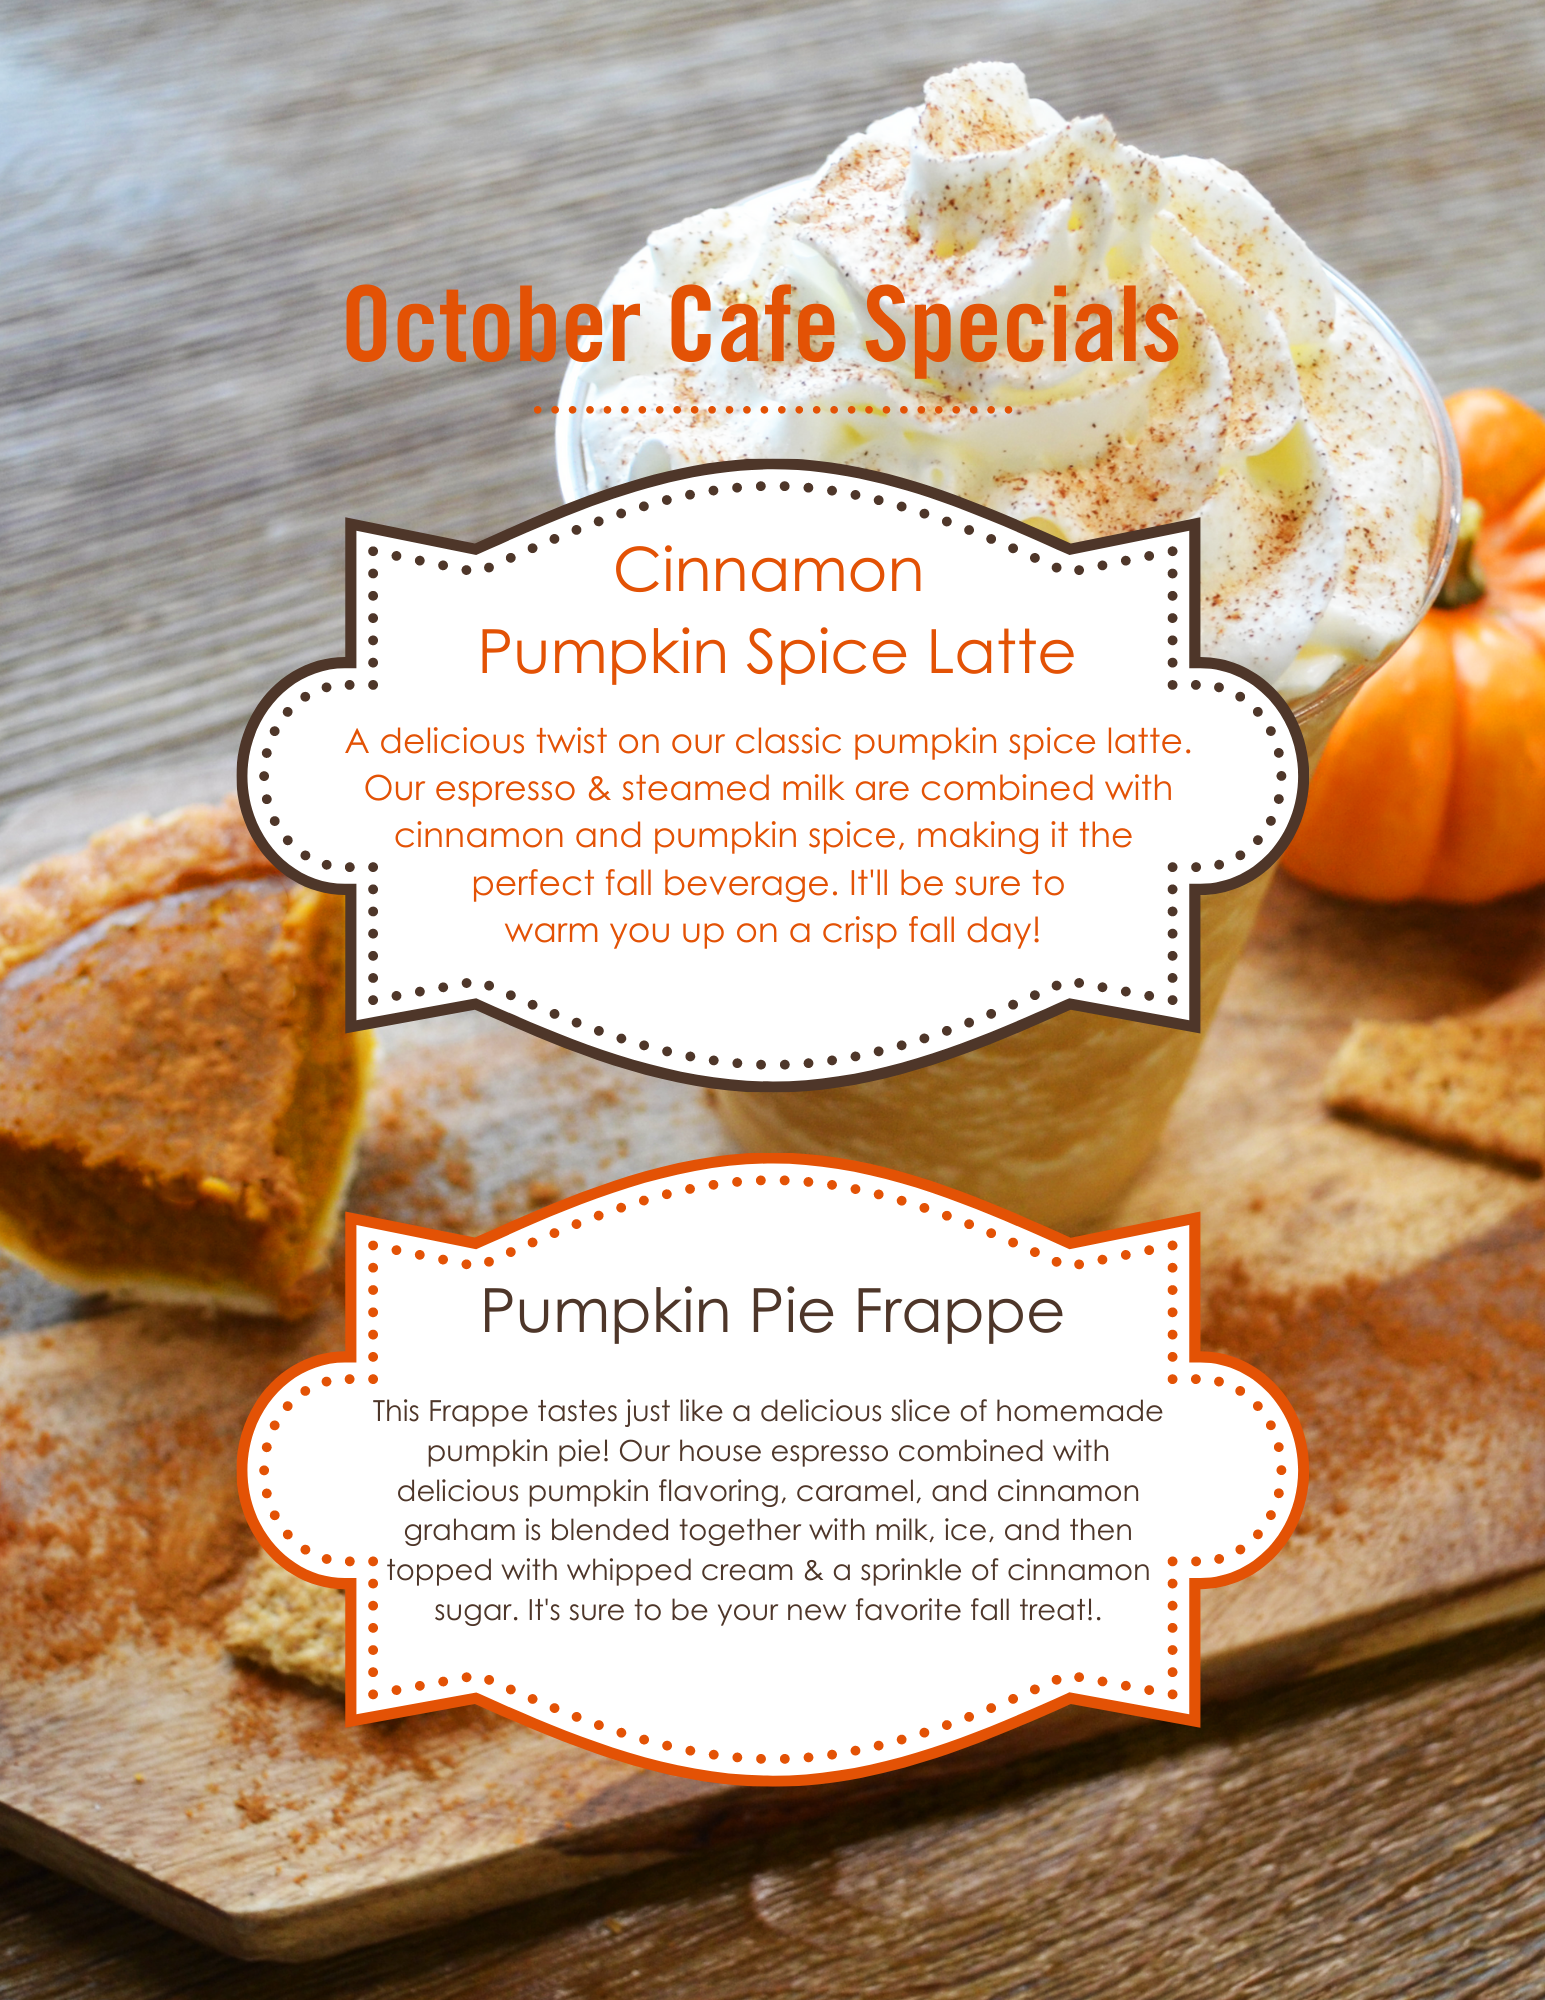 october-cafe-specials-platters-chocolates.png